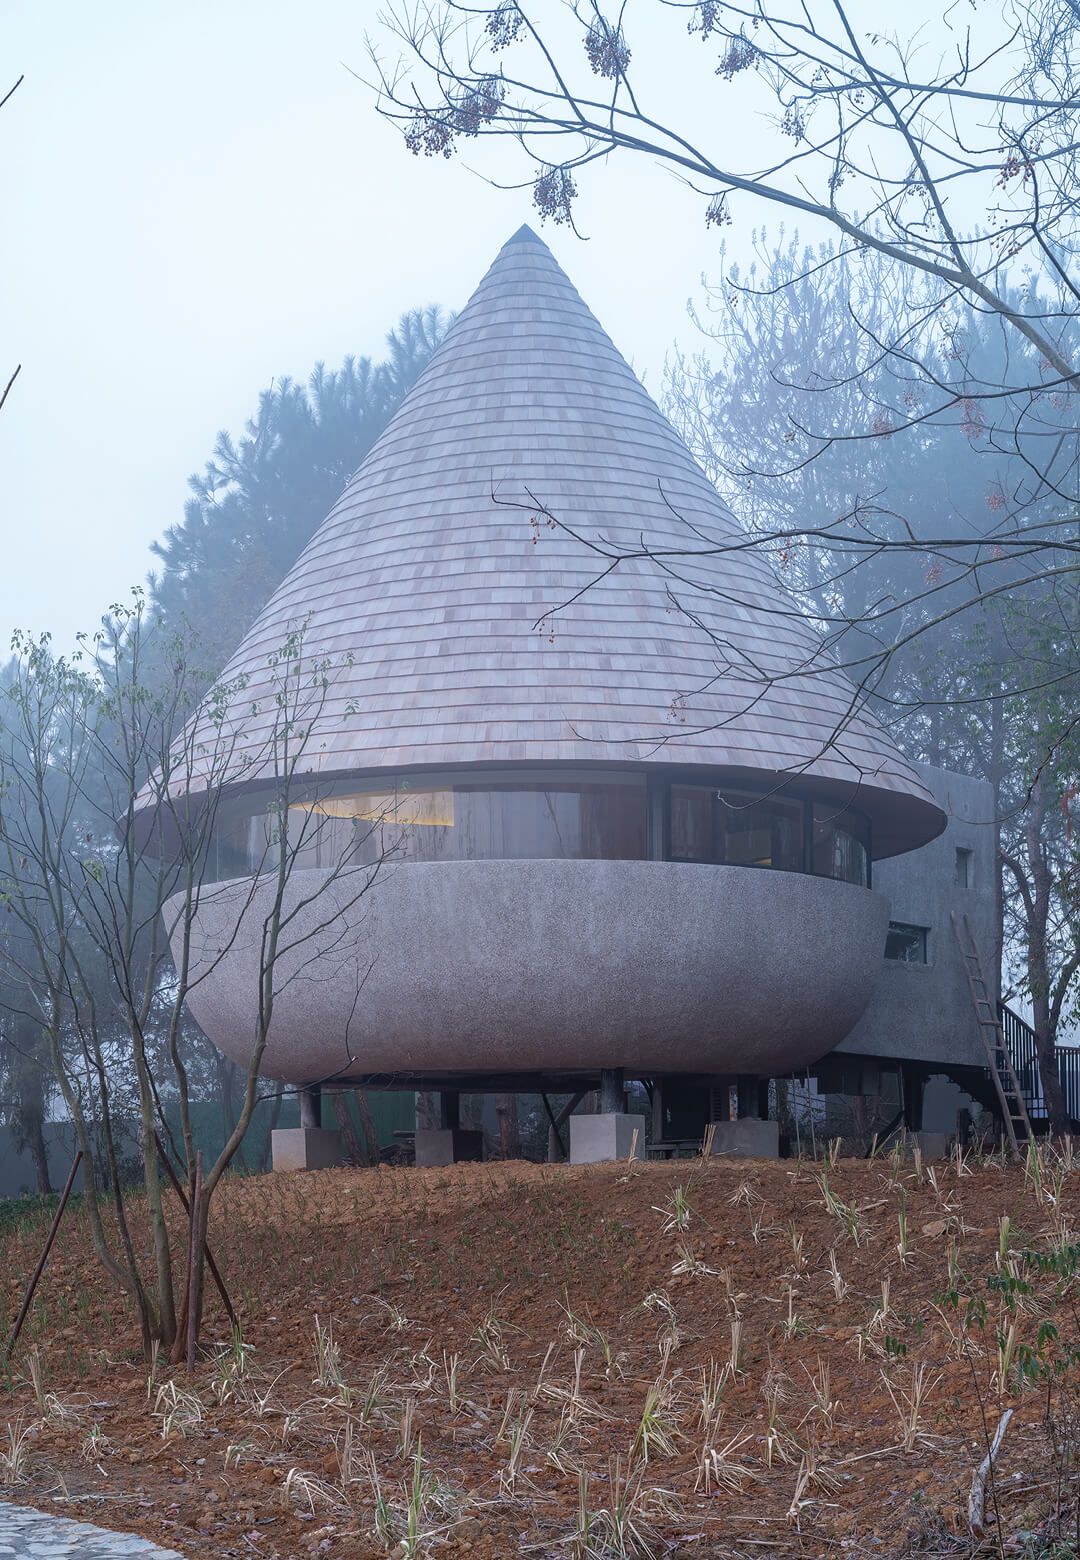 The Mushroom by ZJJZ - a cone-shaped guest house nestled within a pine forest in China's Jiangxi province | ZJJZ | China | STIRworld